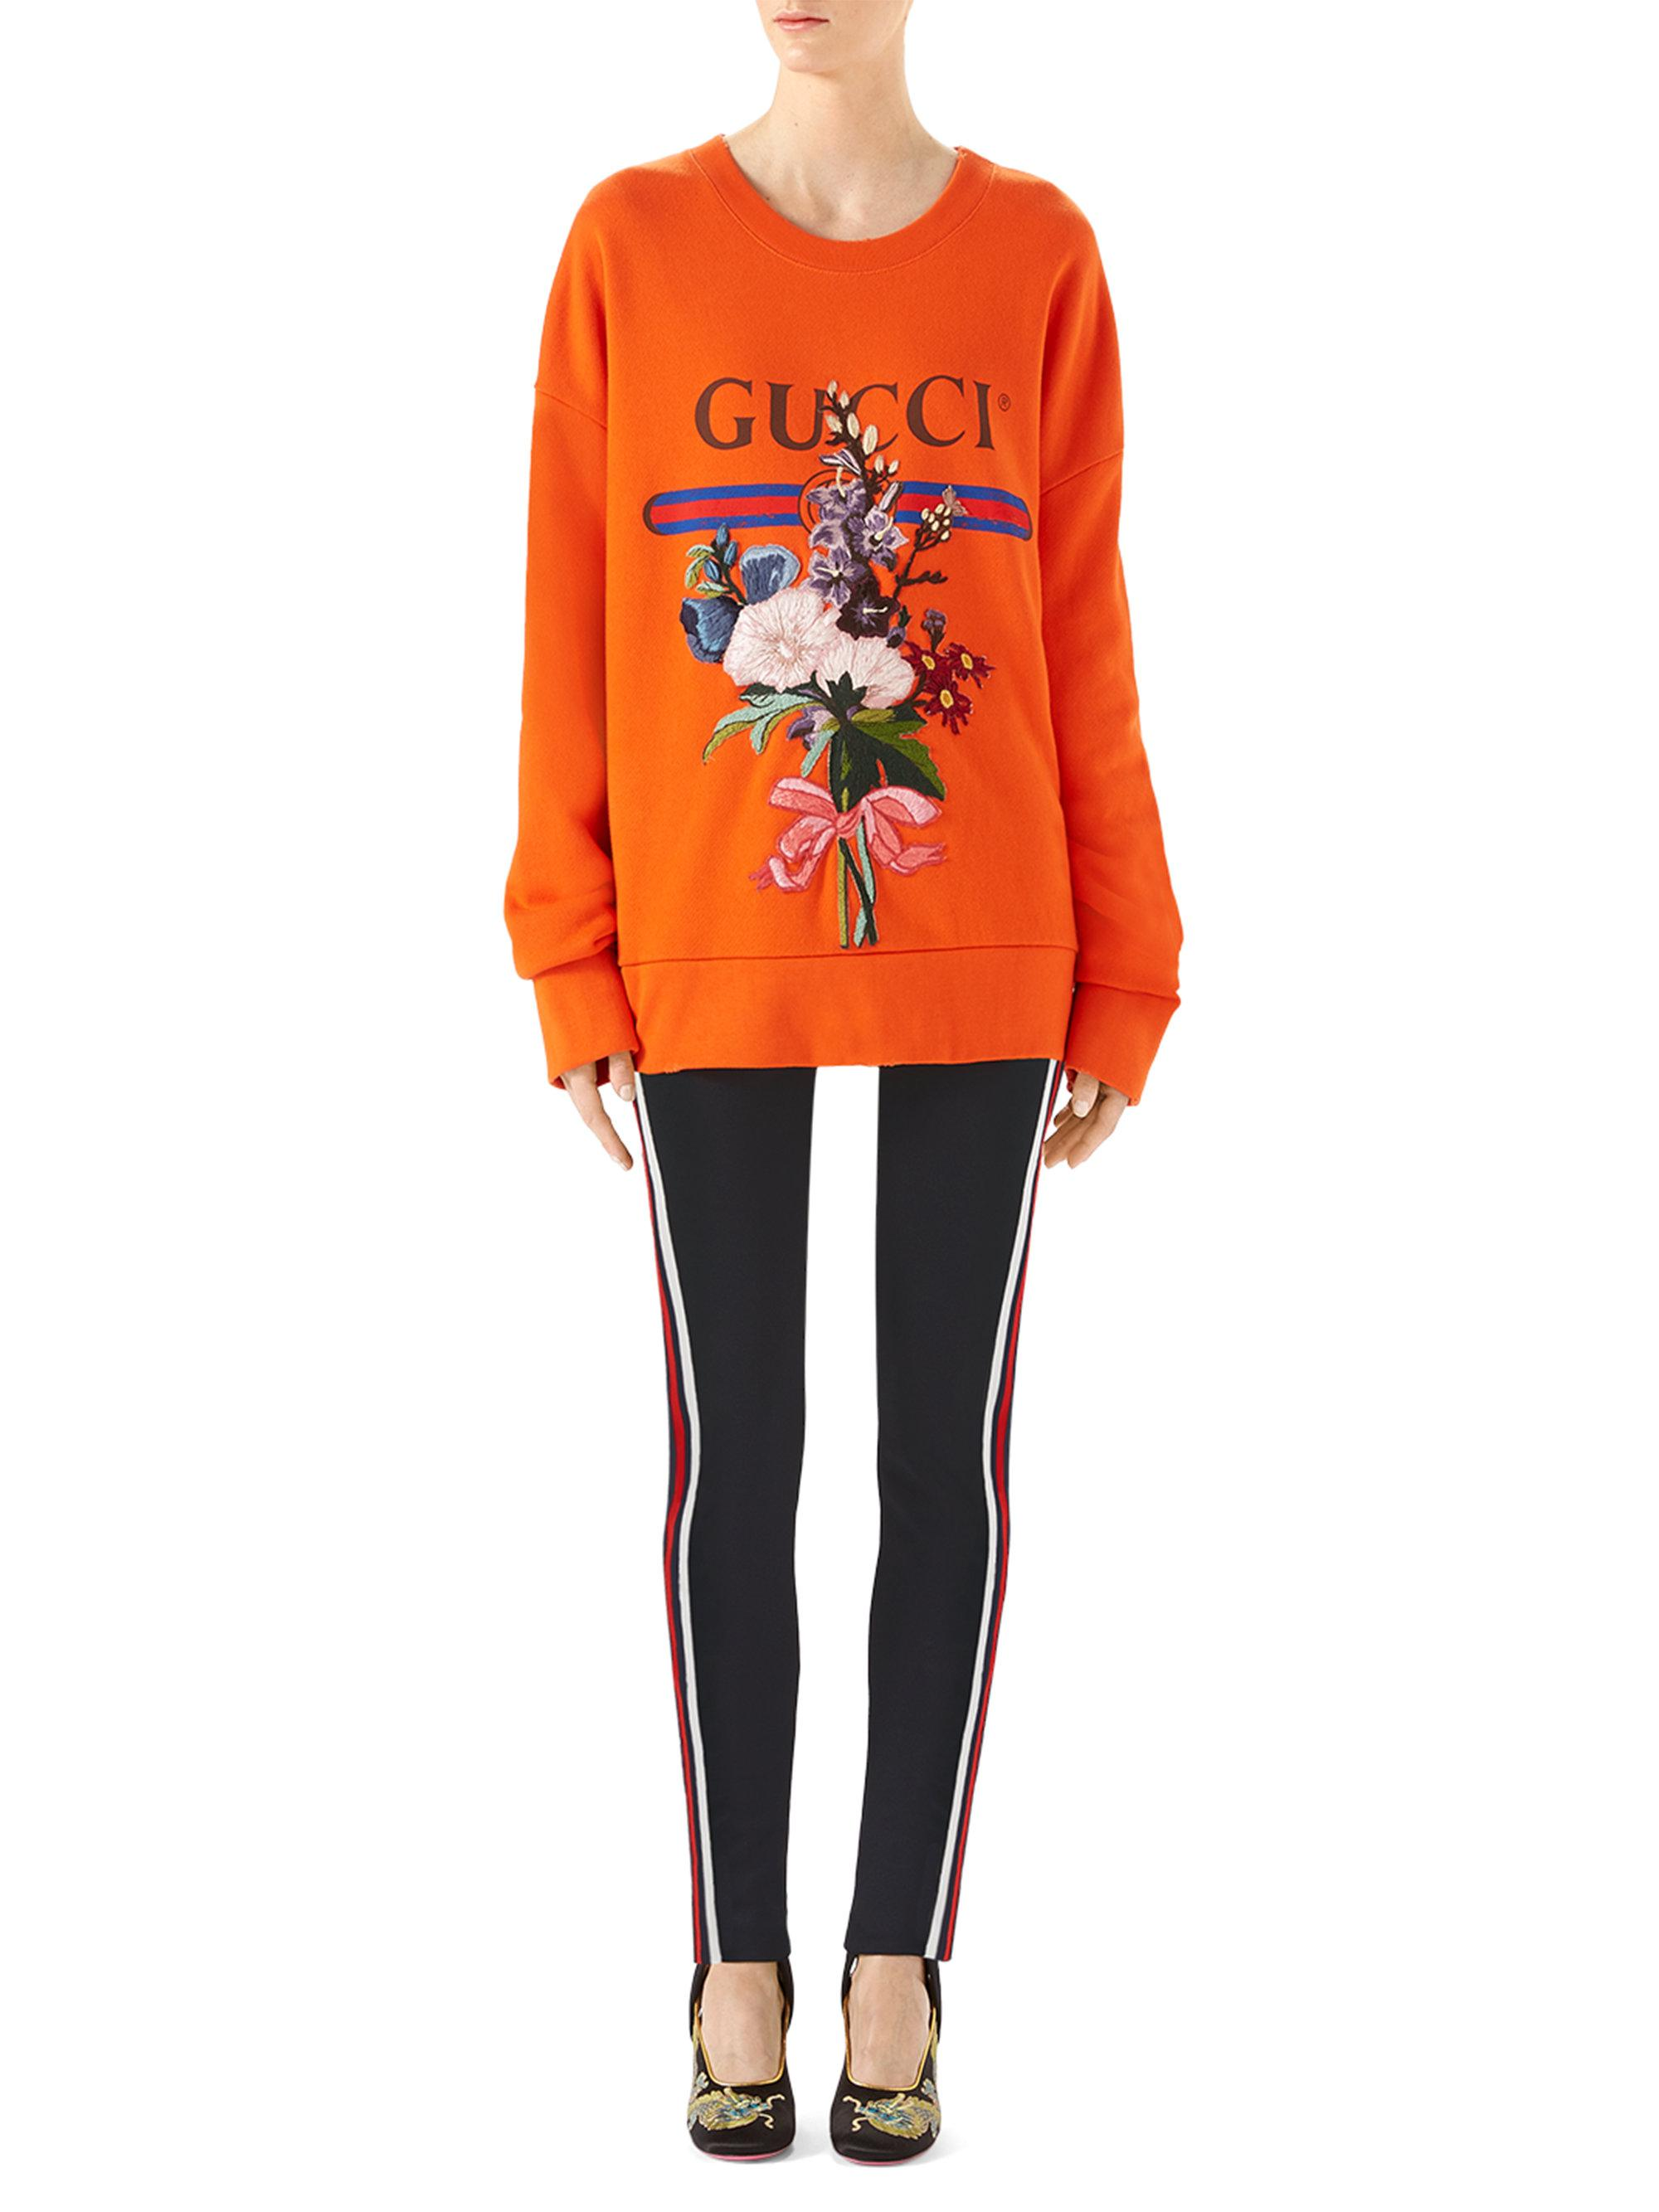 d3bc7d2fa783 Lyst - Gucci Logo Floral-embroidered Sweatshirt in Orange